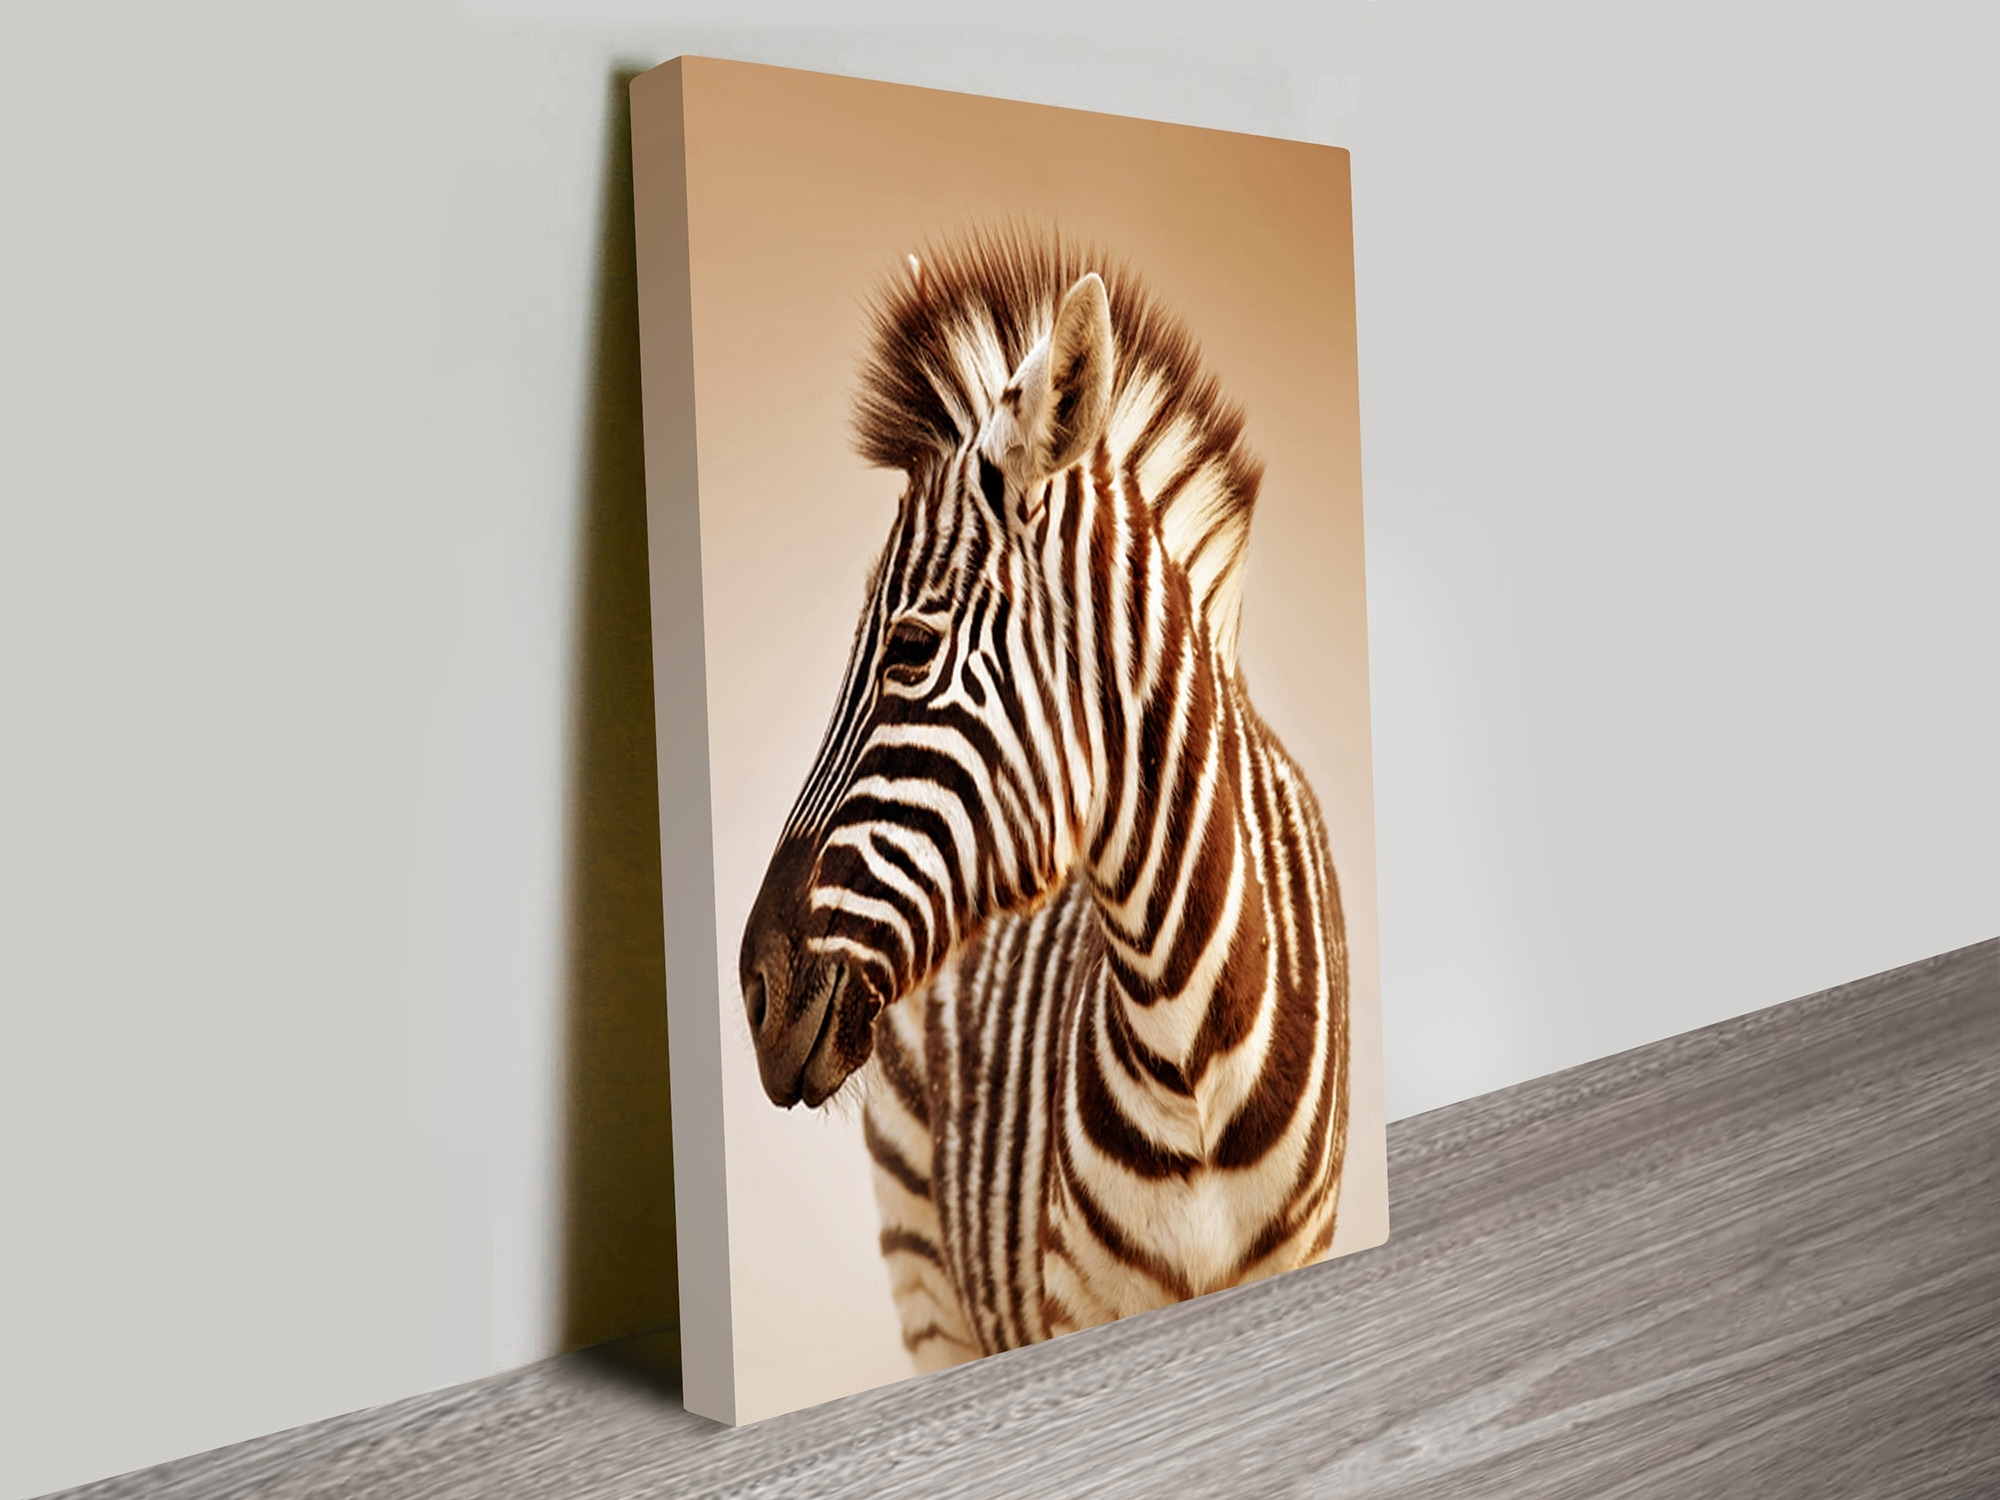 Well Known Zebra Canvas Wall Art With Regard To Zebra Sepia Canvas Wall Art Prints Wollongong (View 10 of 20)